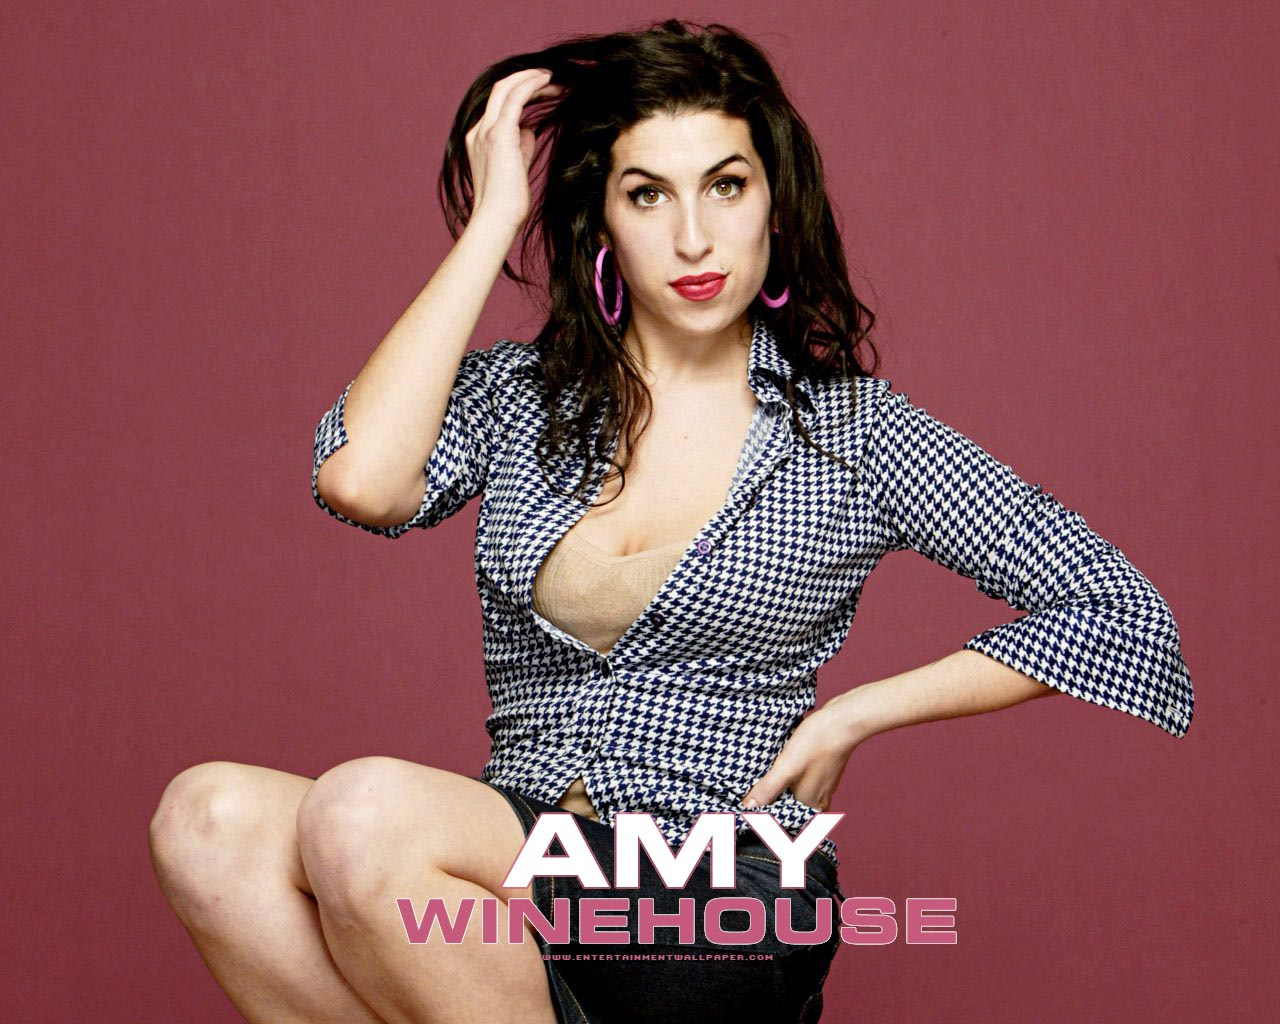 amy winehouseAmy Winehouse